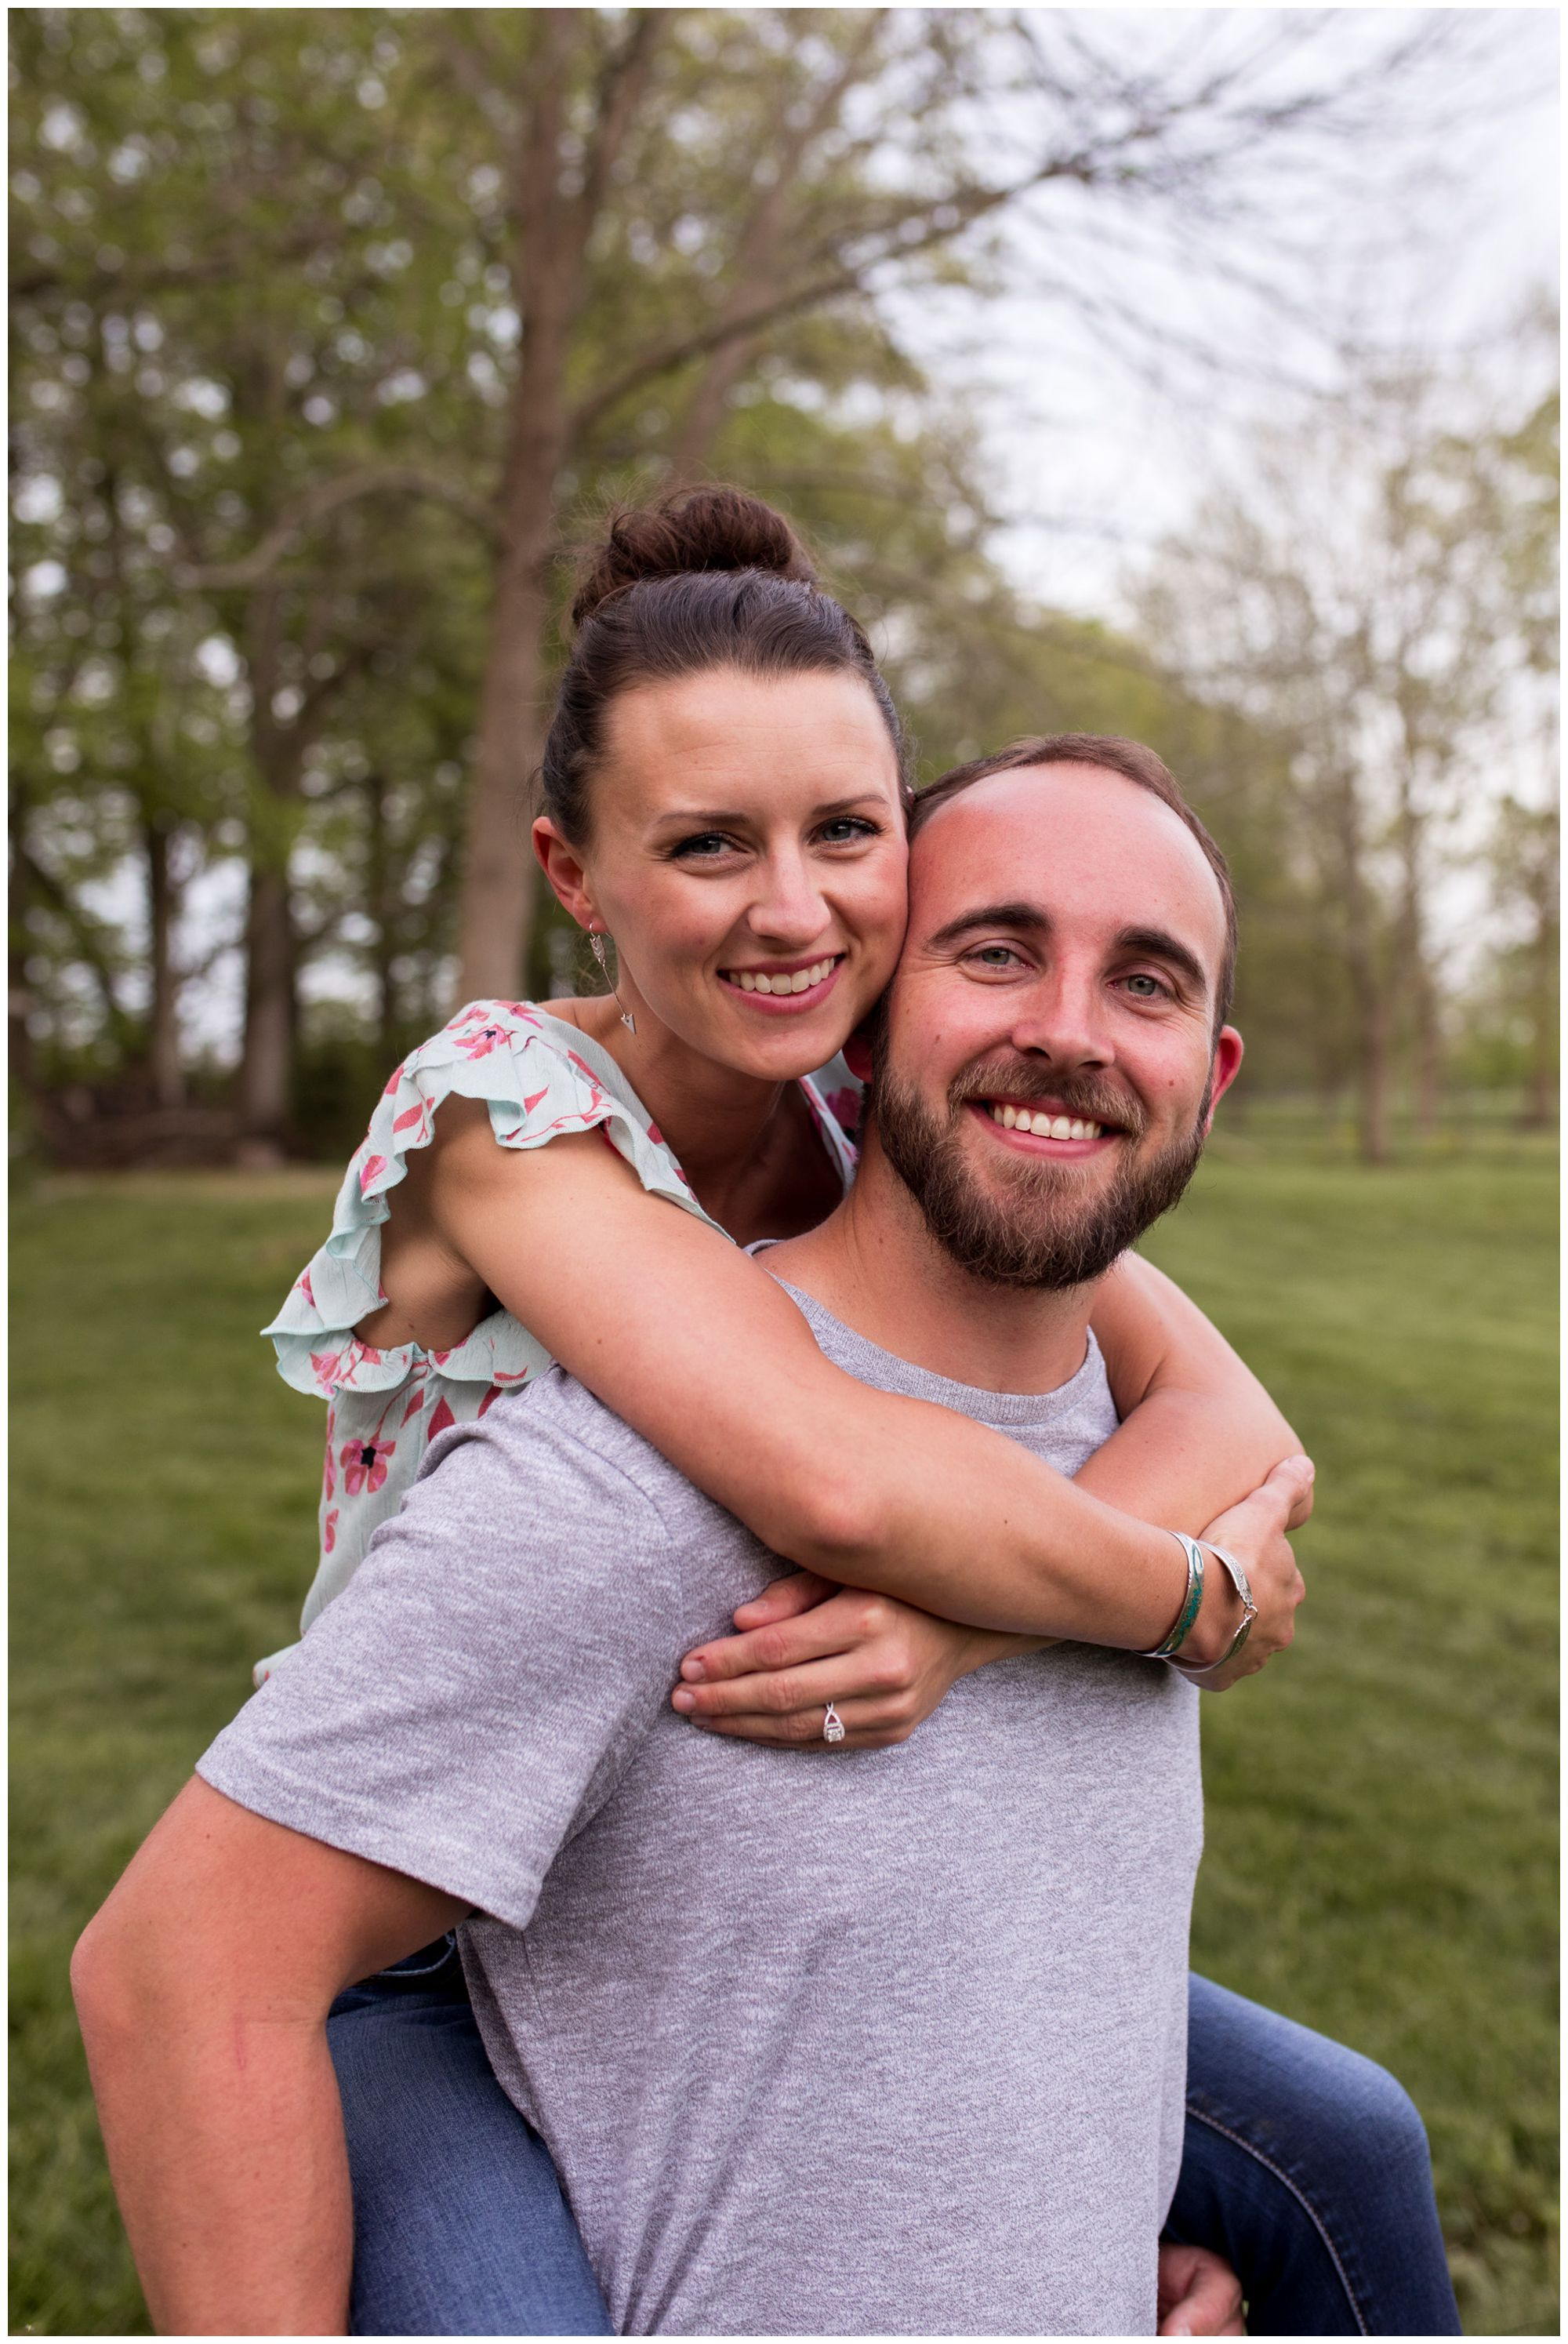 bride rides piggy back on groom's back during Indianapolis engagement session